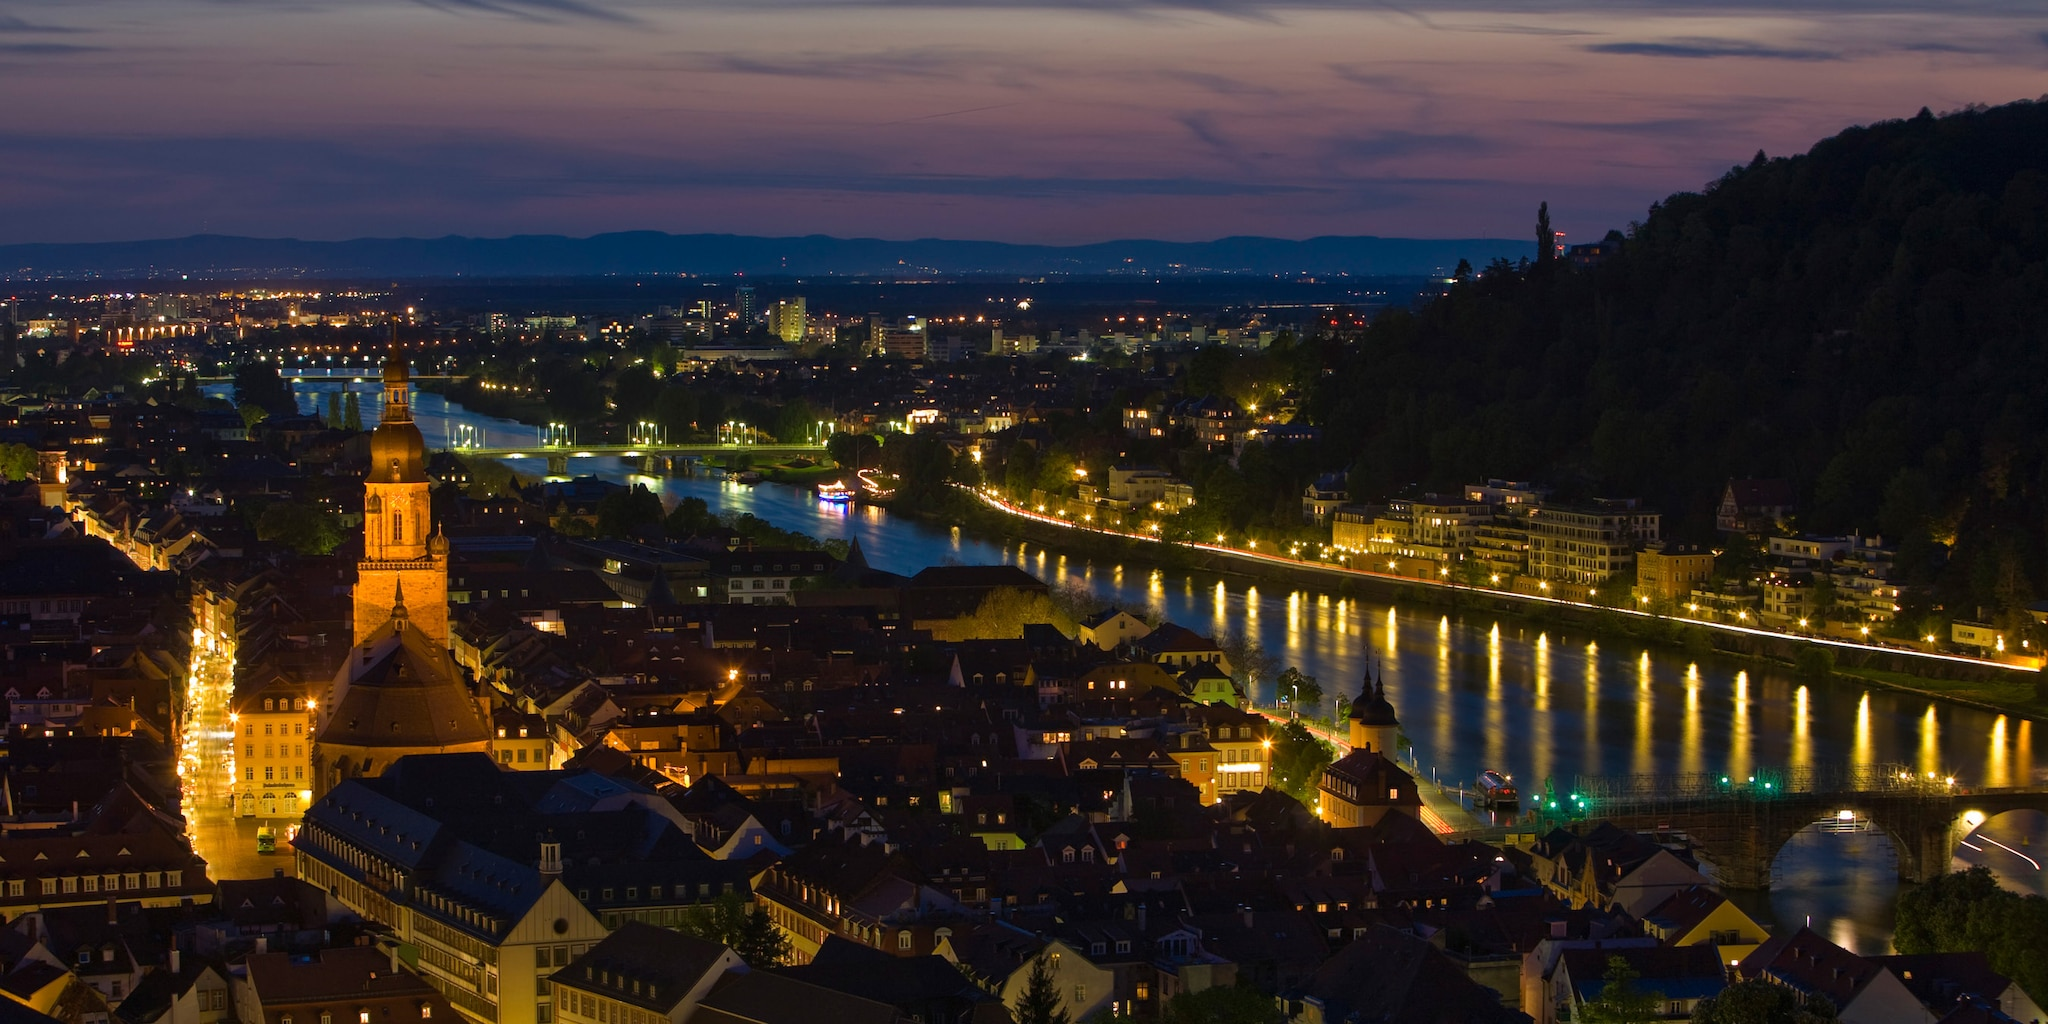 Heidelberg at night is one stop on the Germany tour